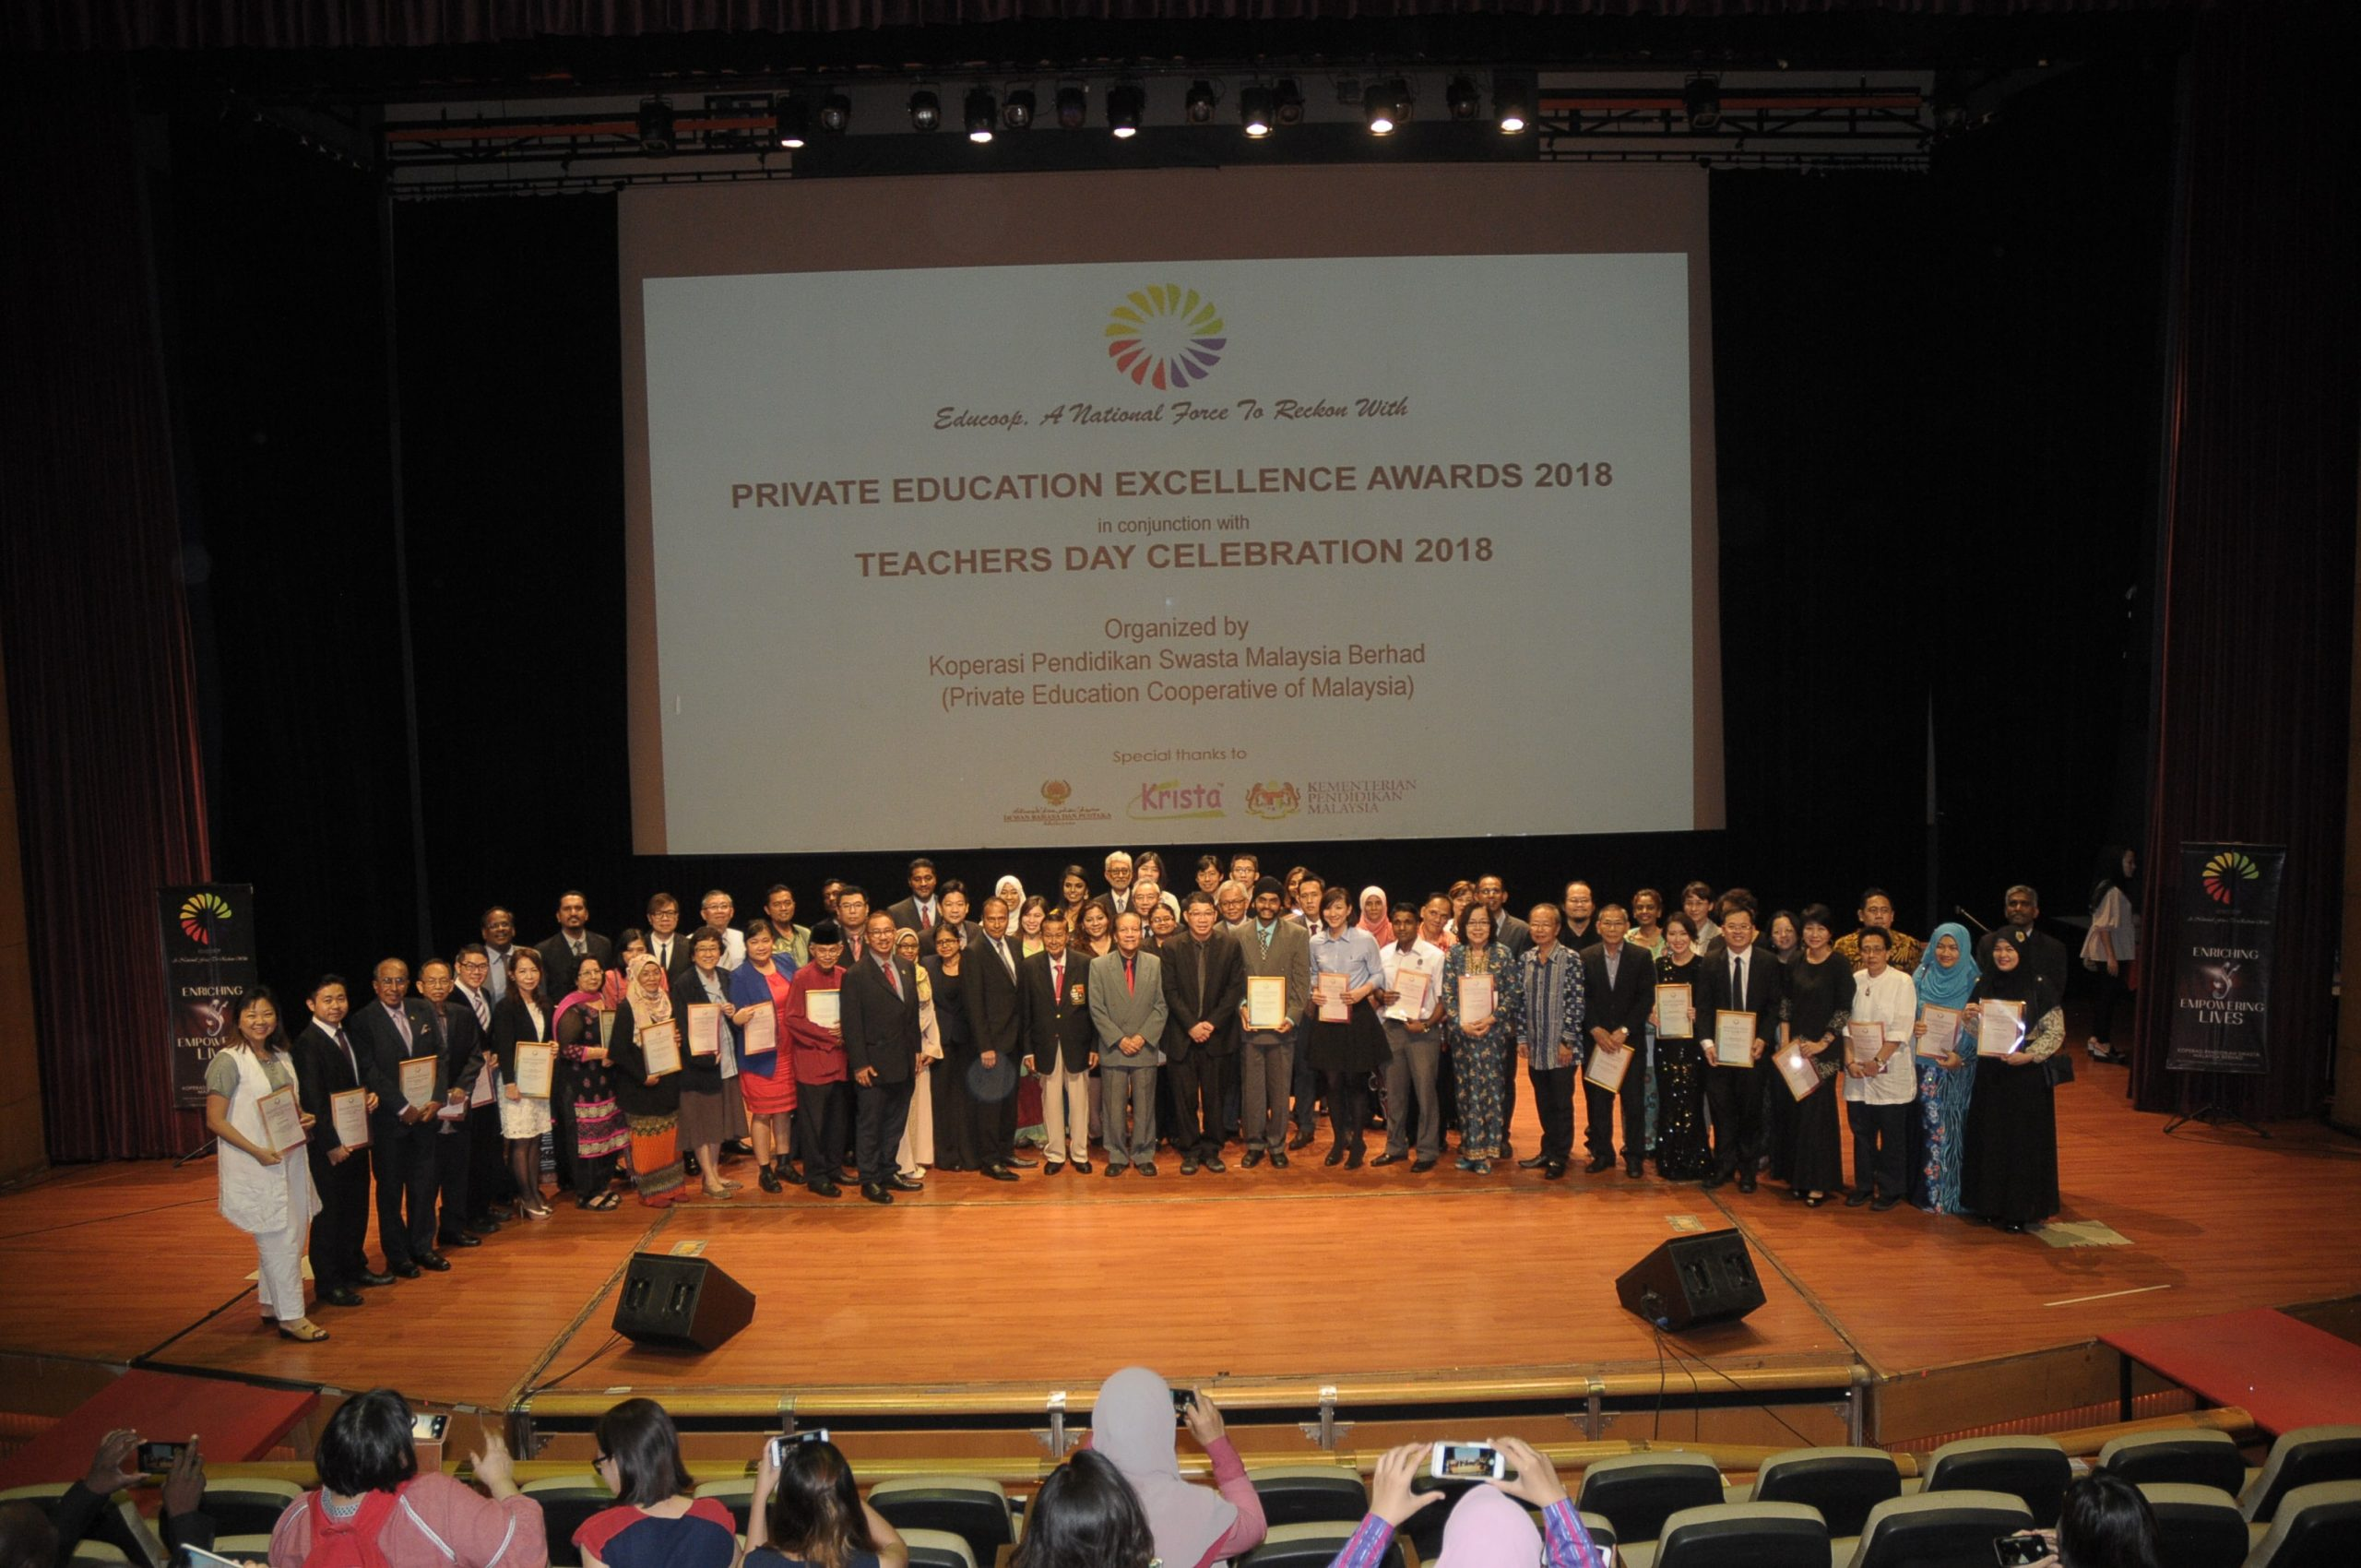 Private Education Excellence Award 2018